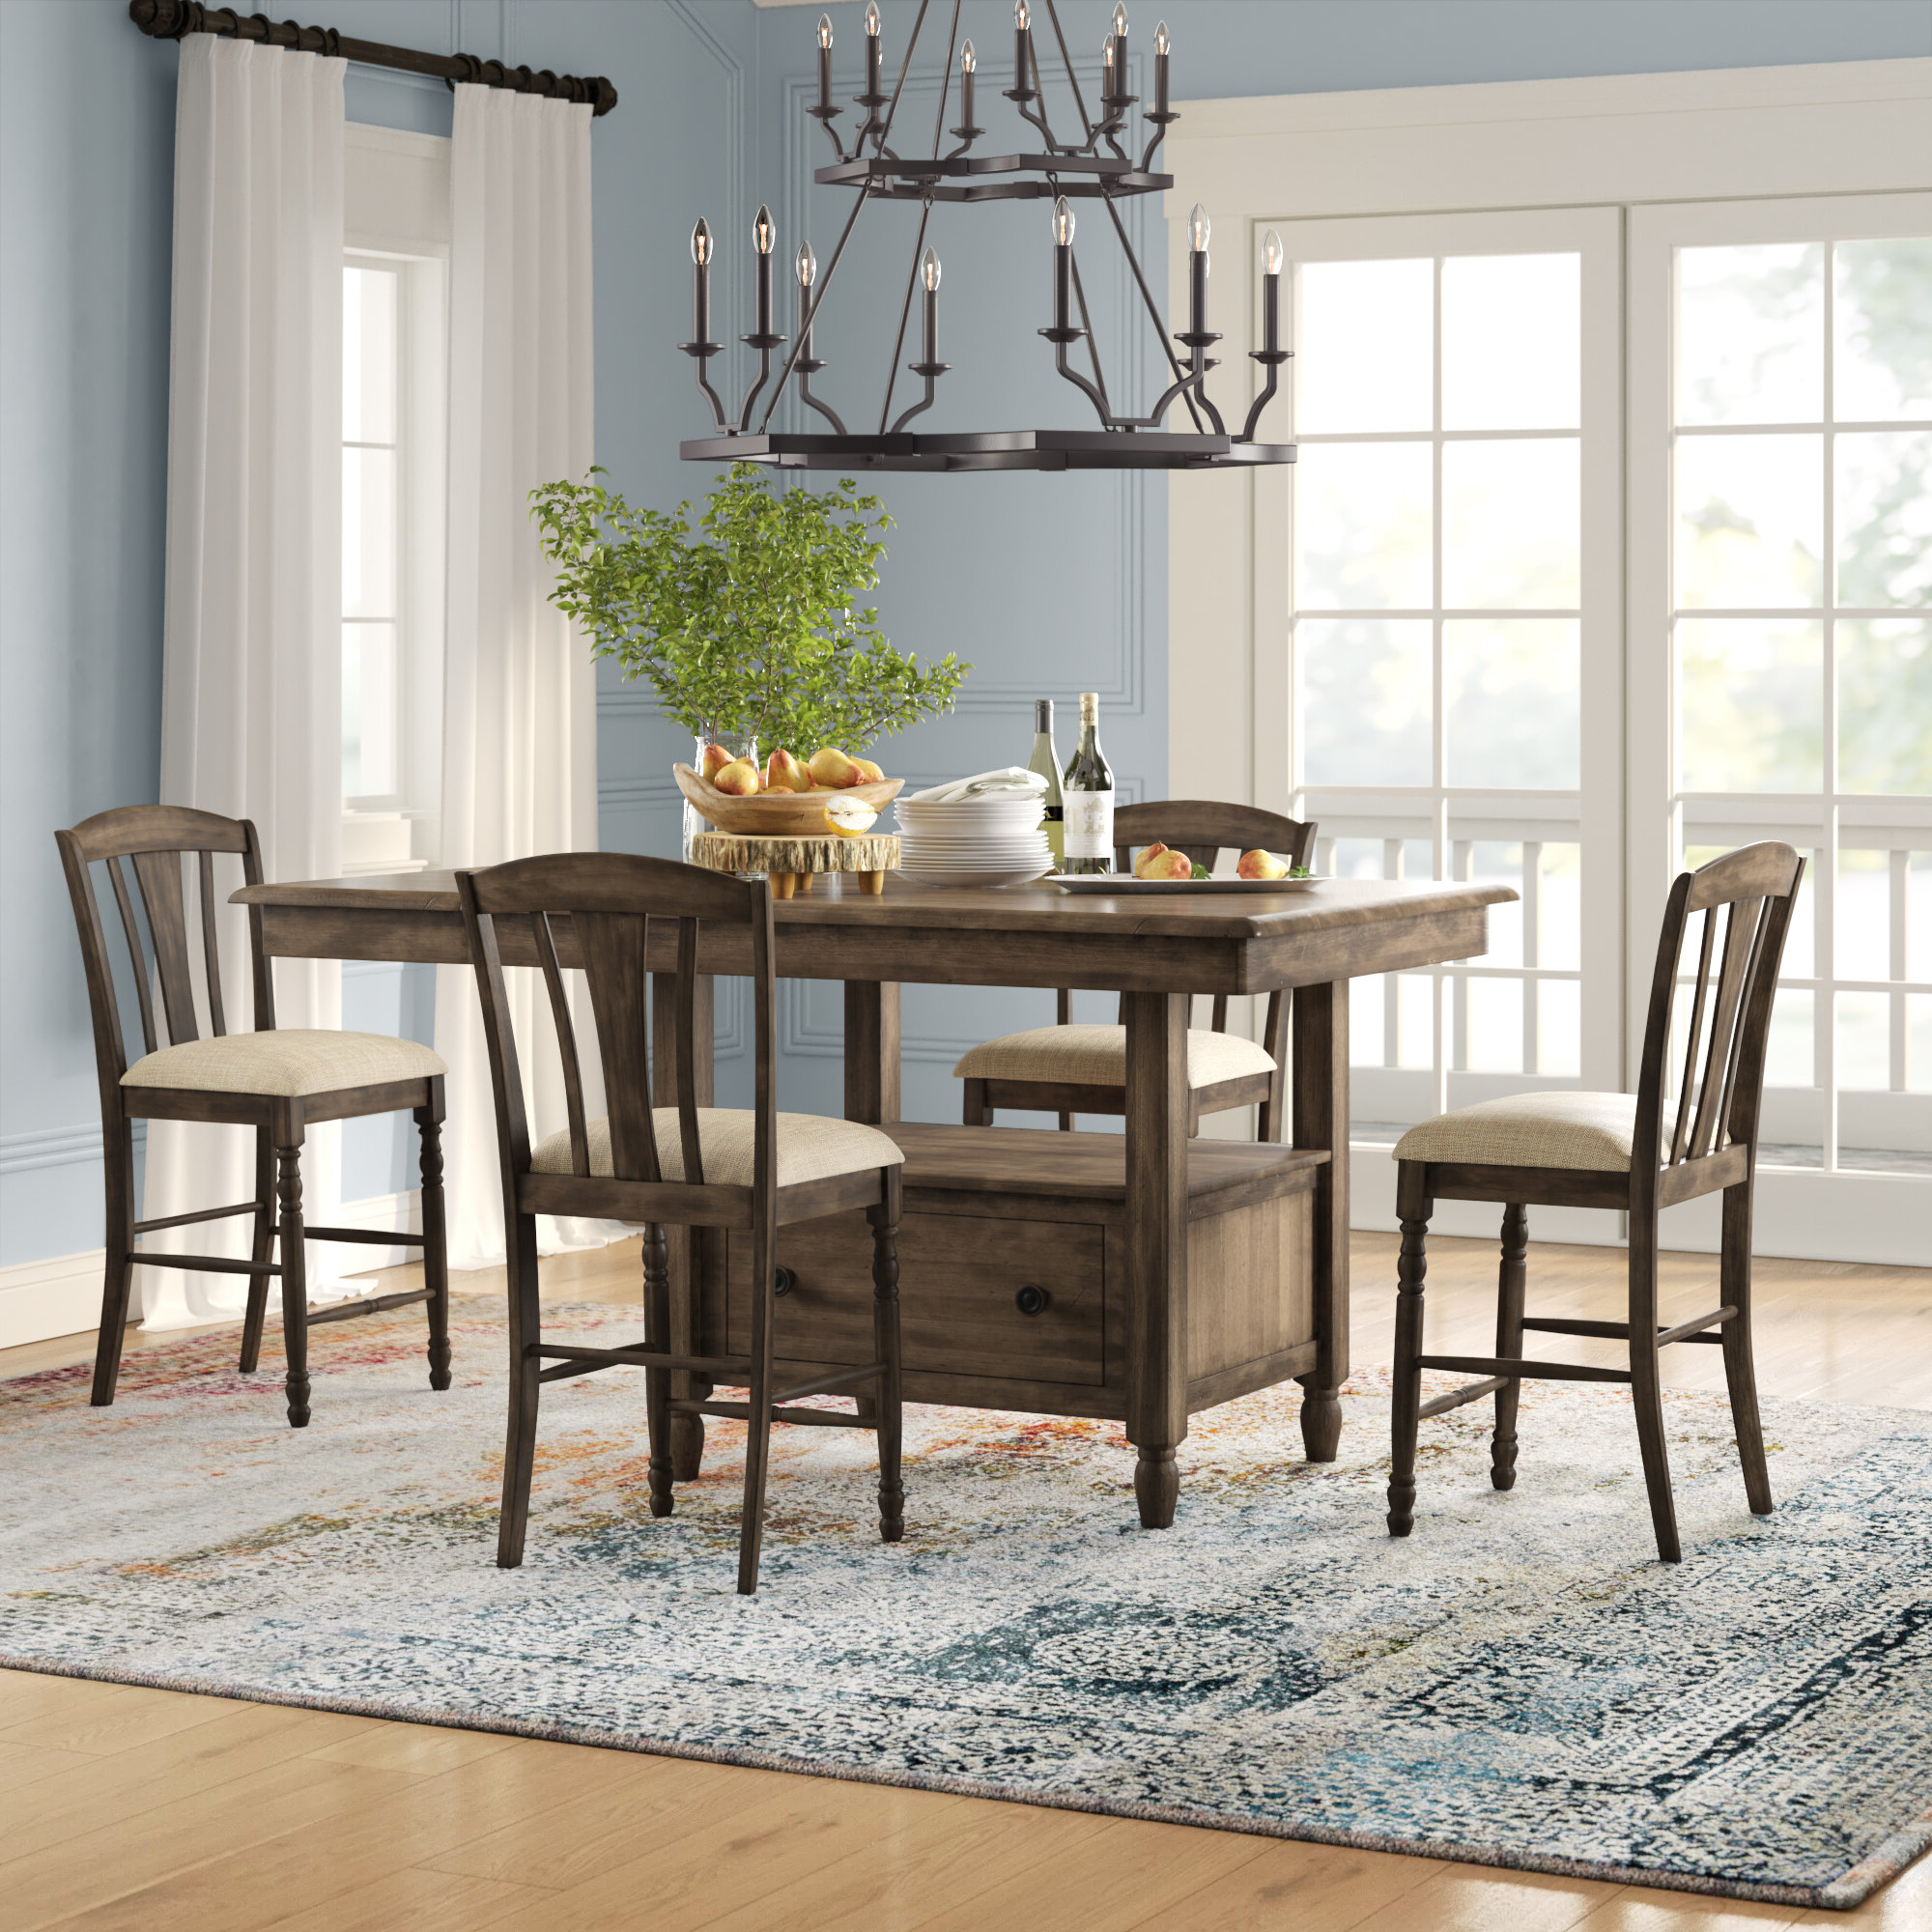 5 Piece Breakfast Nook Dining Sets Inside Popular Perez 5 Piece Solid Wood Breakfast Nook Dining Set (View 3 of 20)